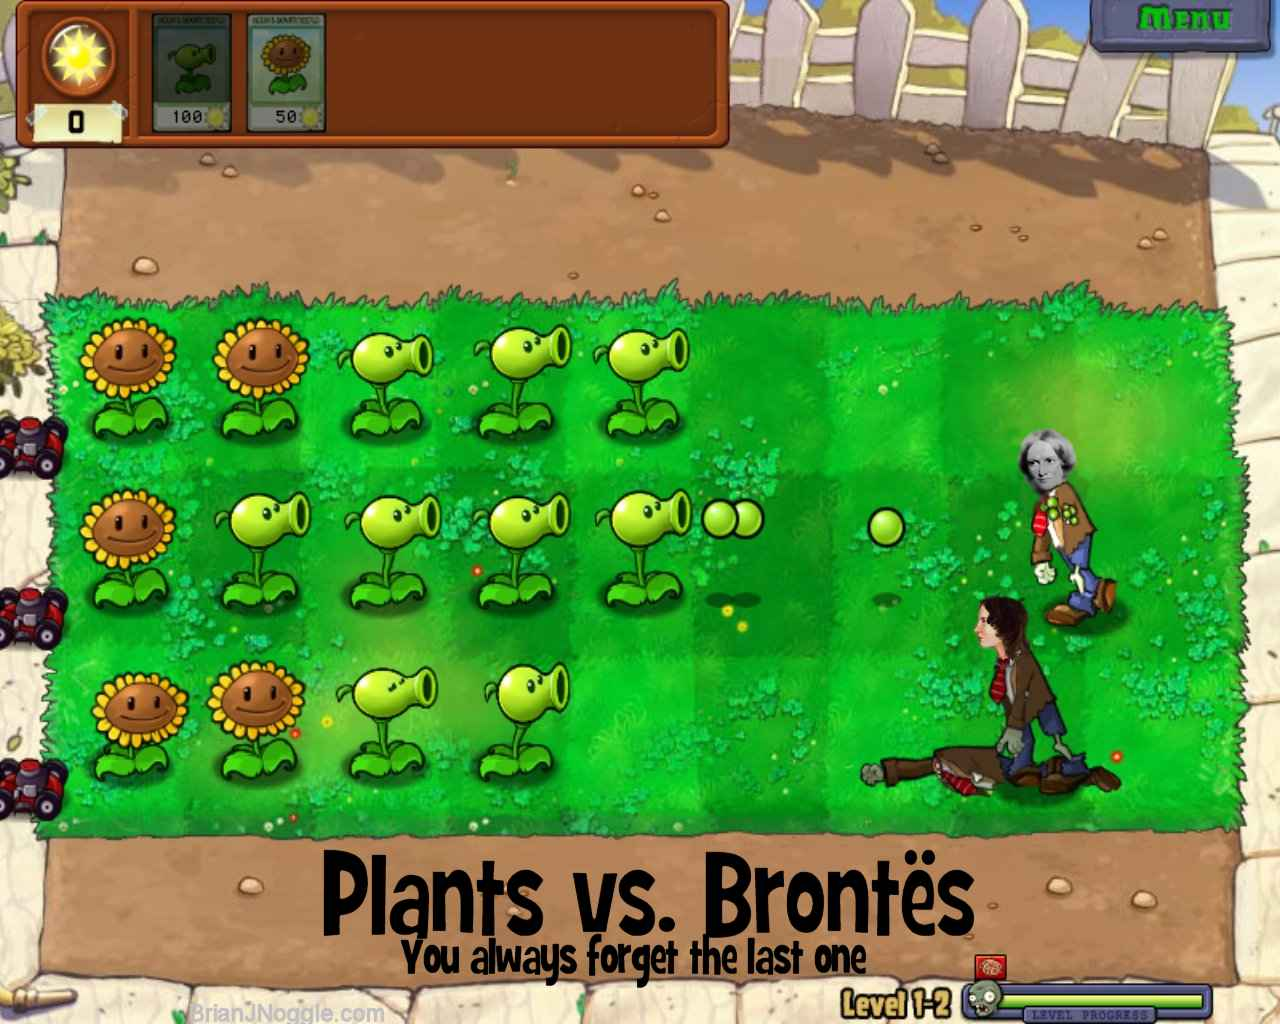 Plants vs Brontës